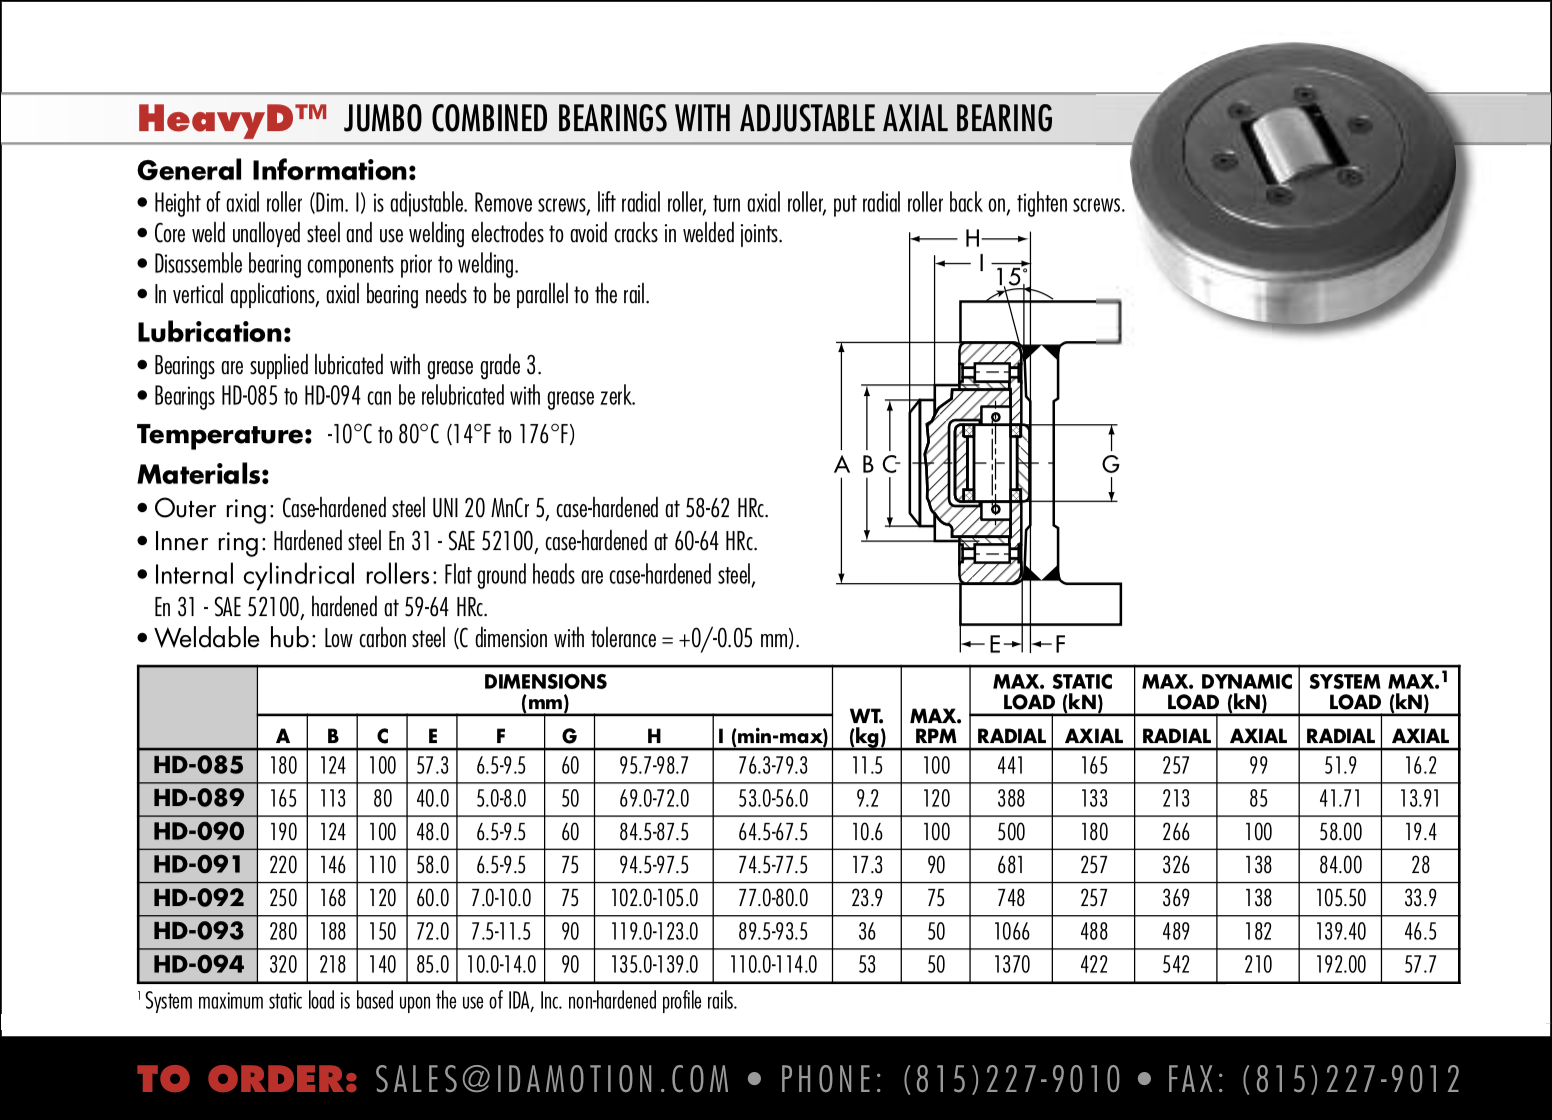 Jumbo Combined with Adjustable Axial Bearing